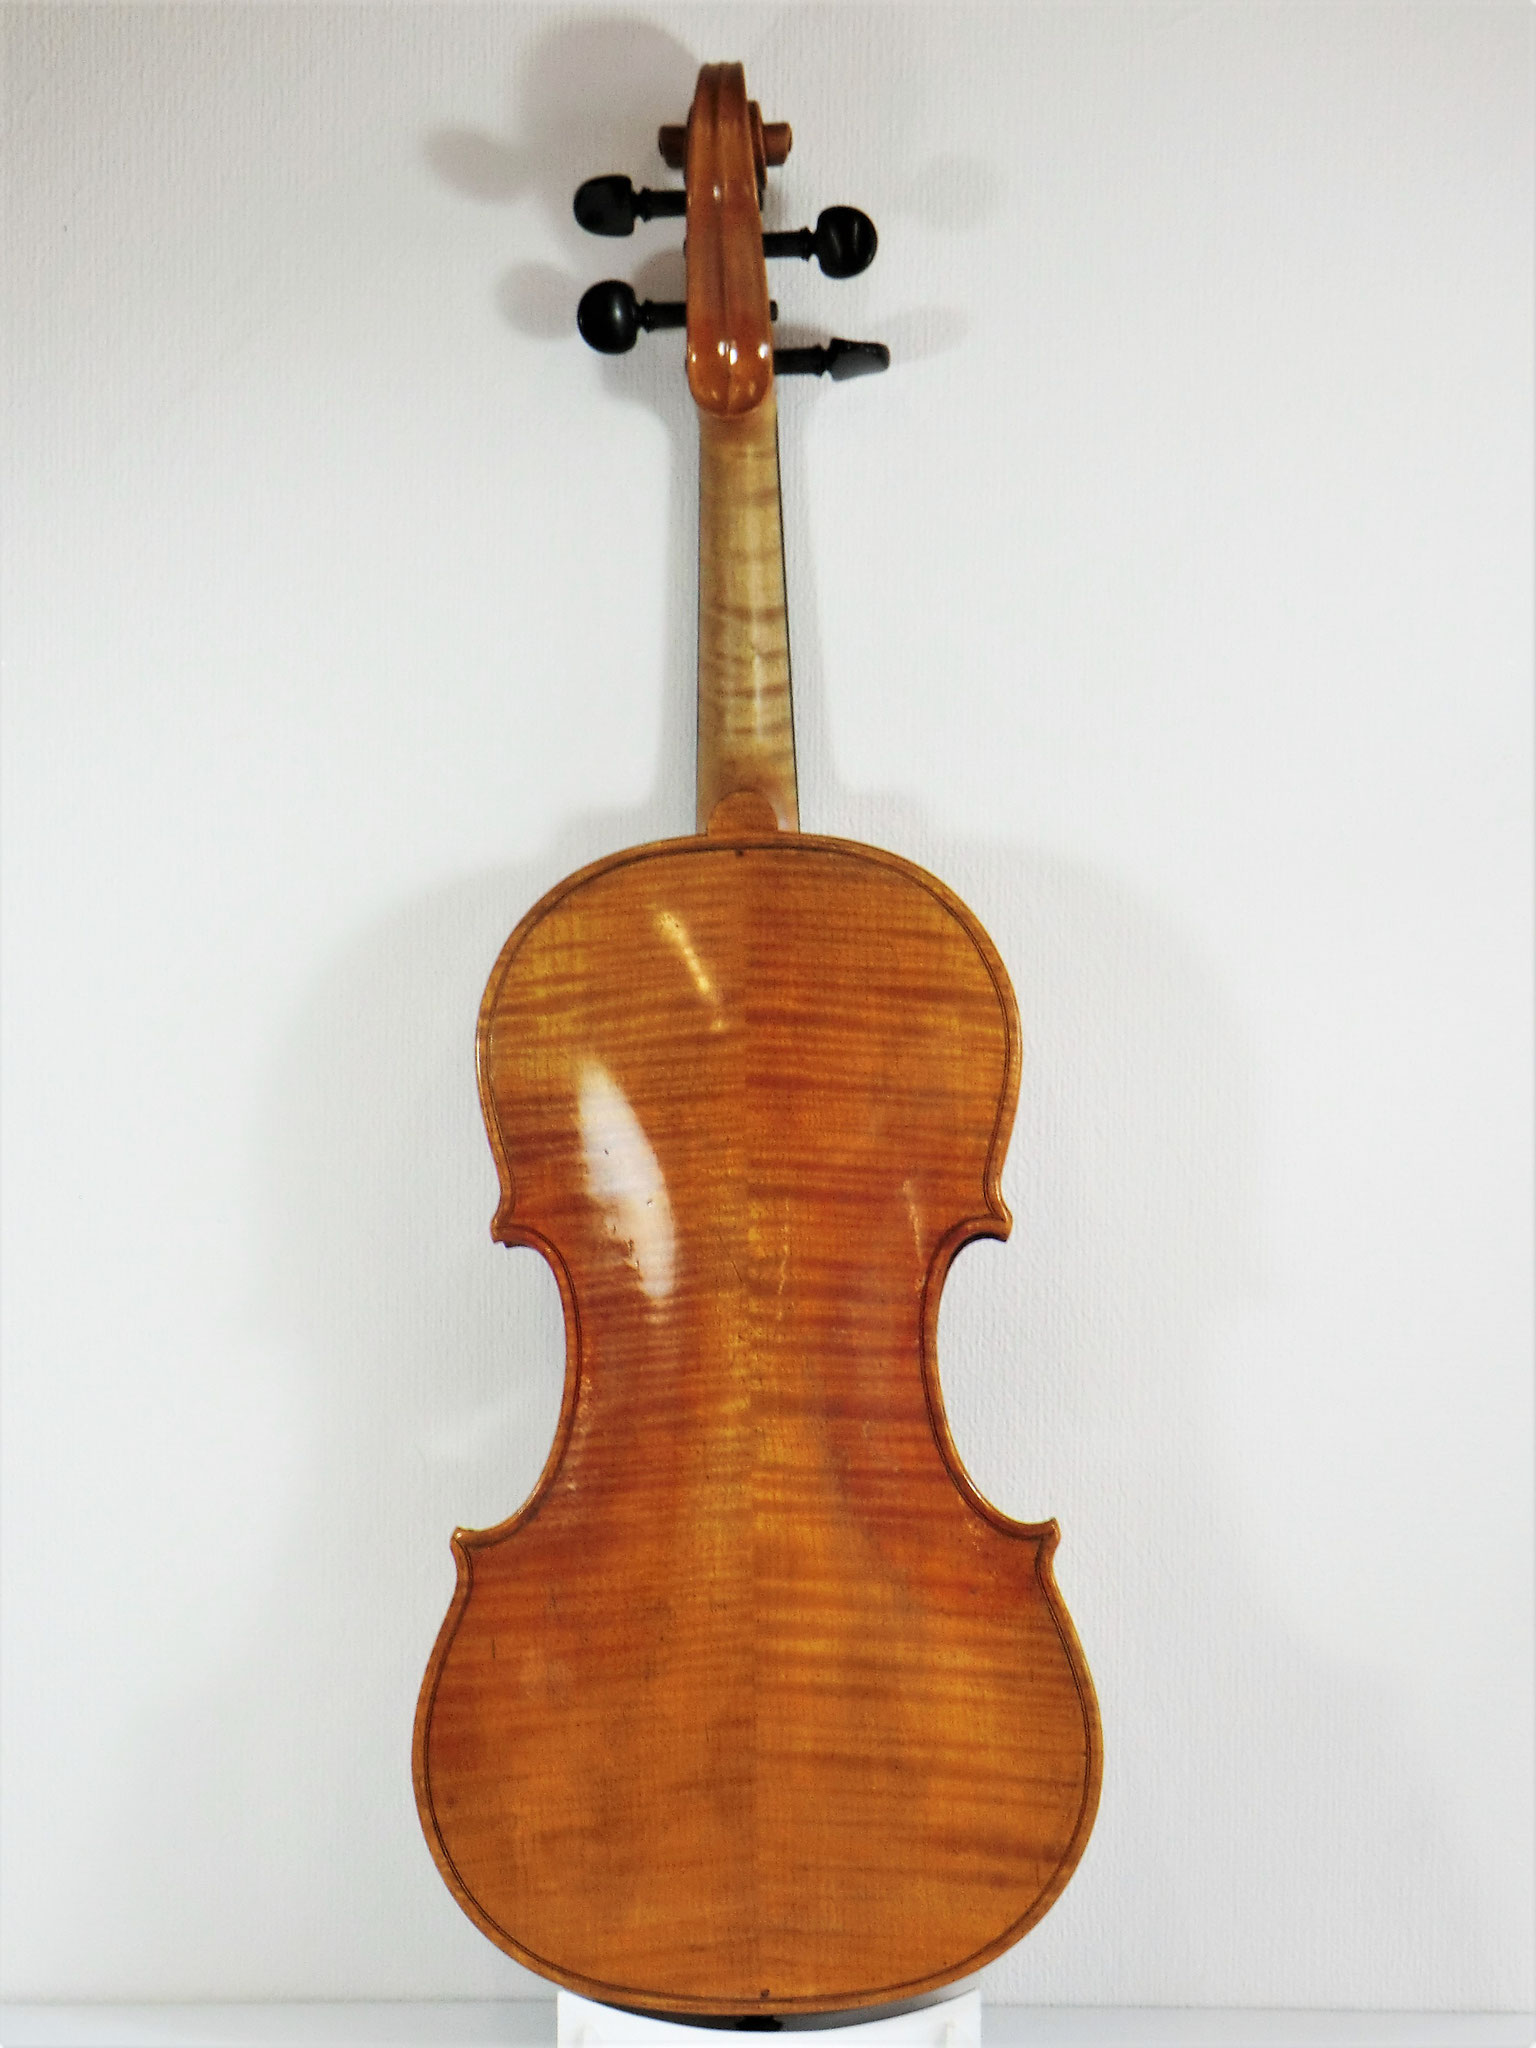 Guarneri del Gesu, 2016